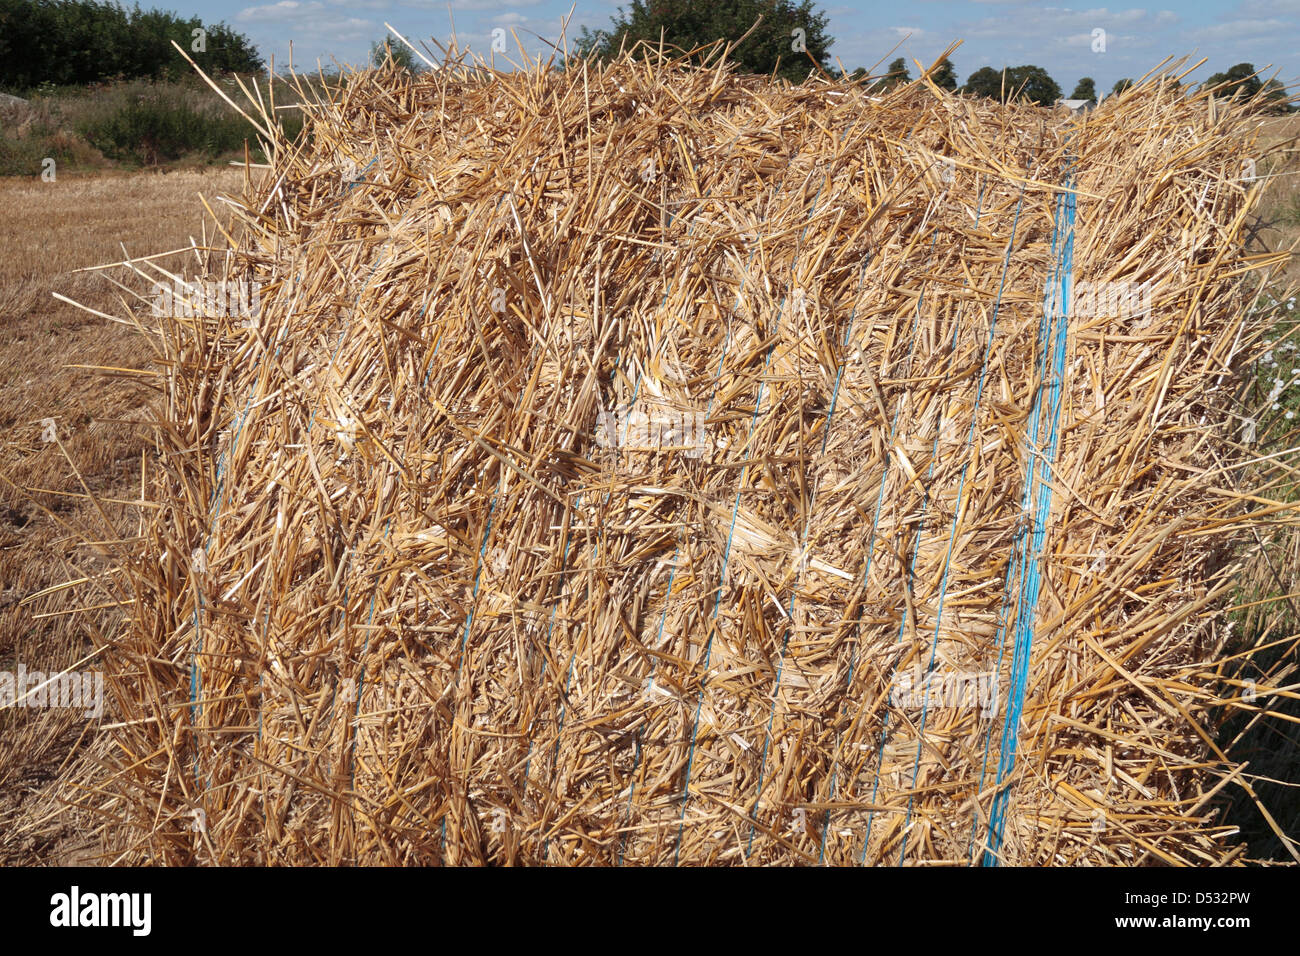 A roll of packed straw (hay bale) in a field in France. - Stock Image